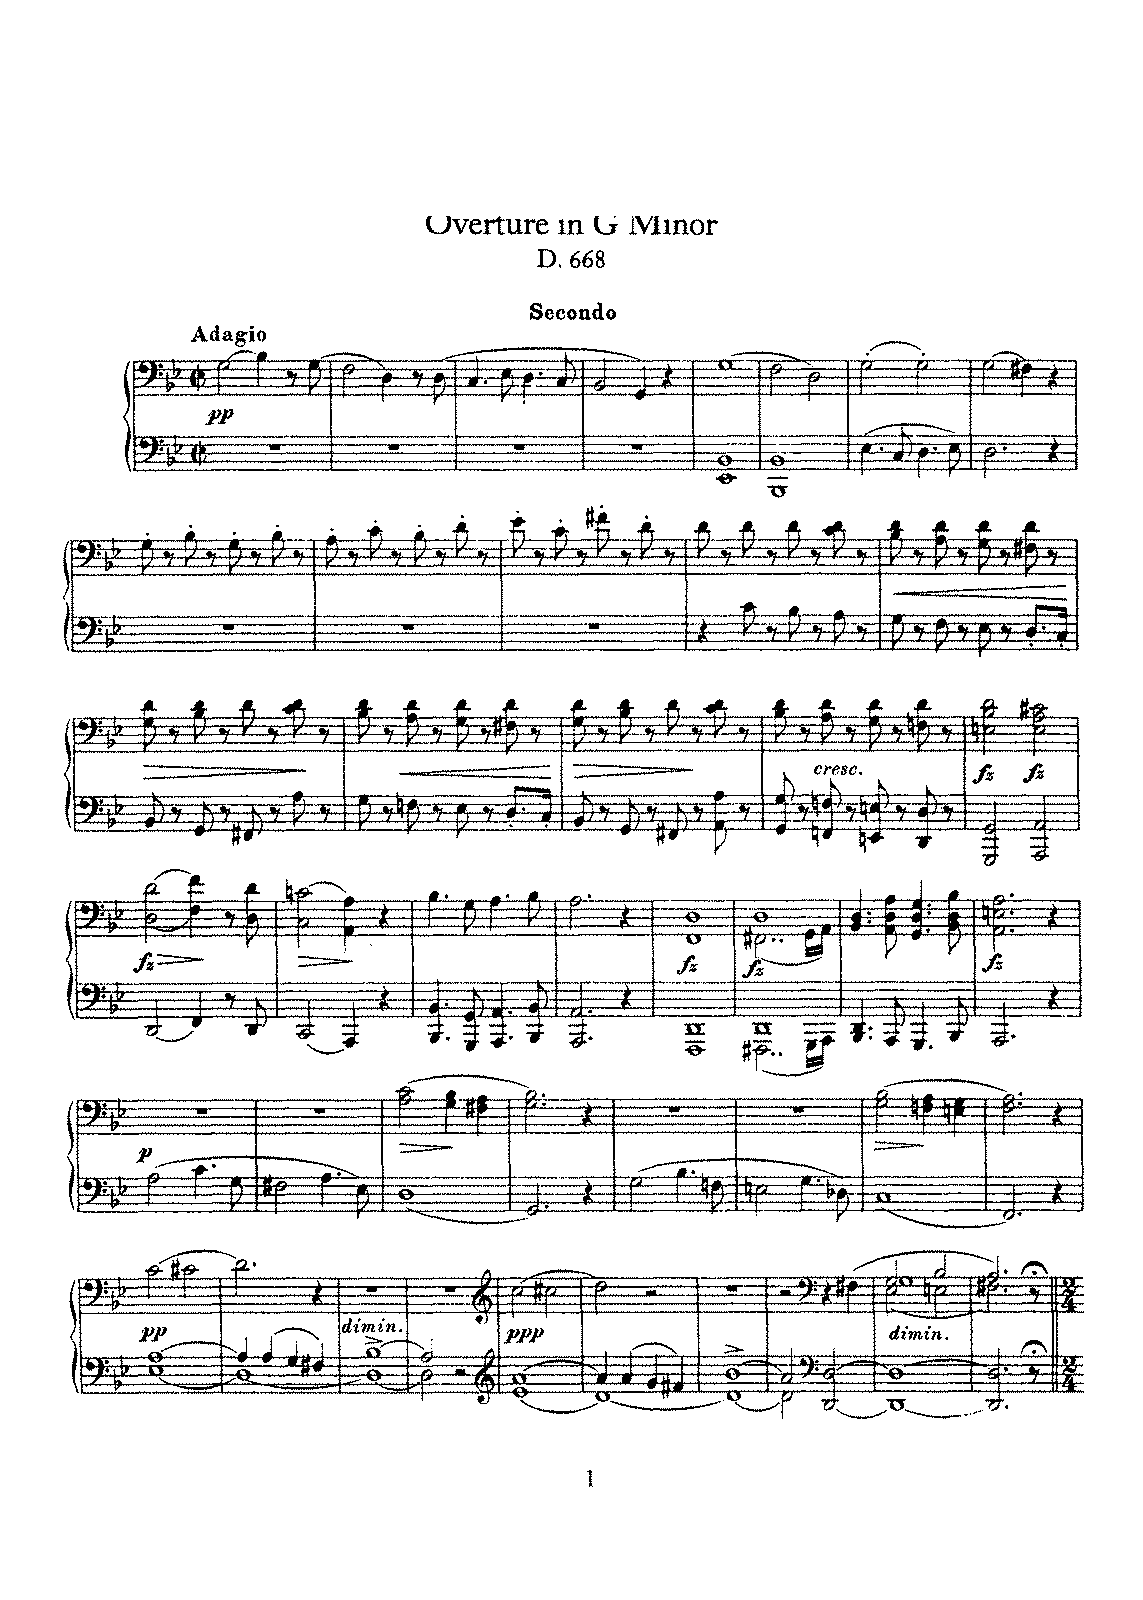 Schubert - D.668 - Overture in G minor.pdf